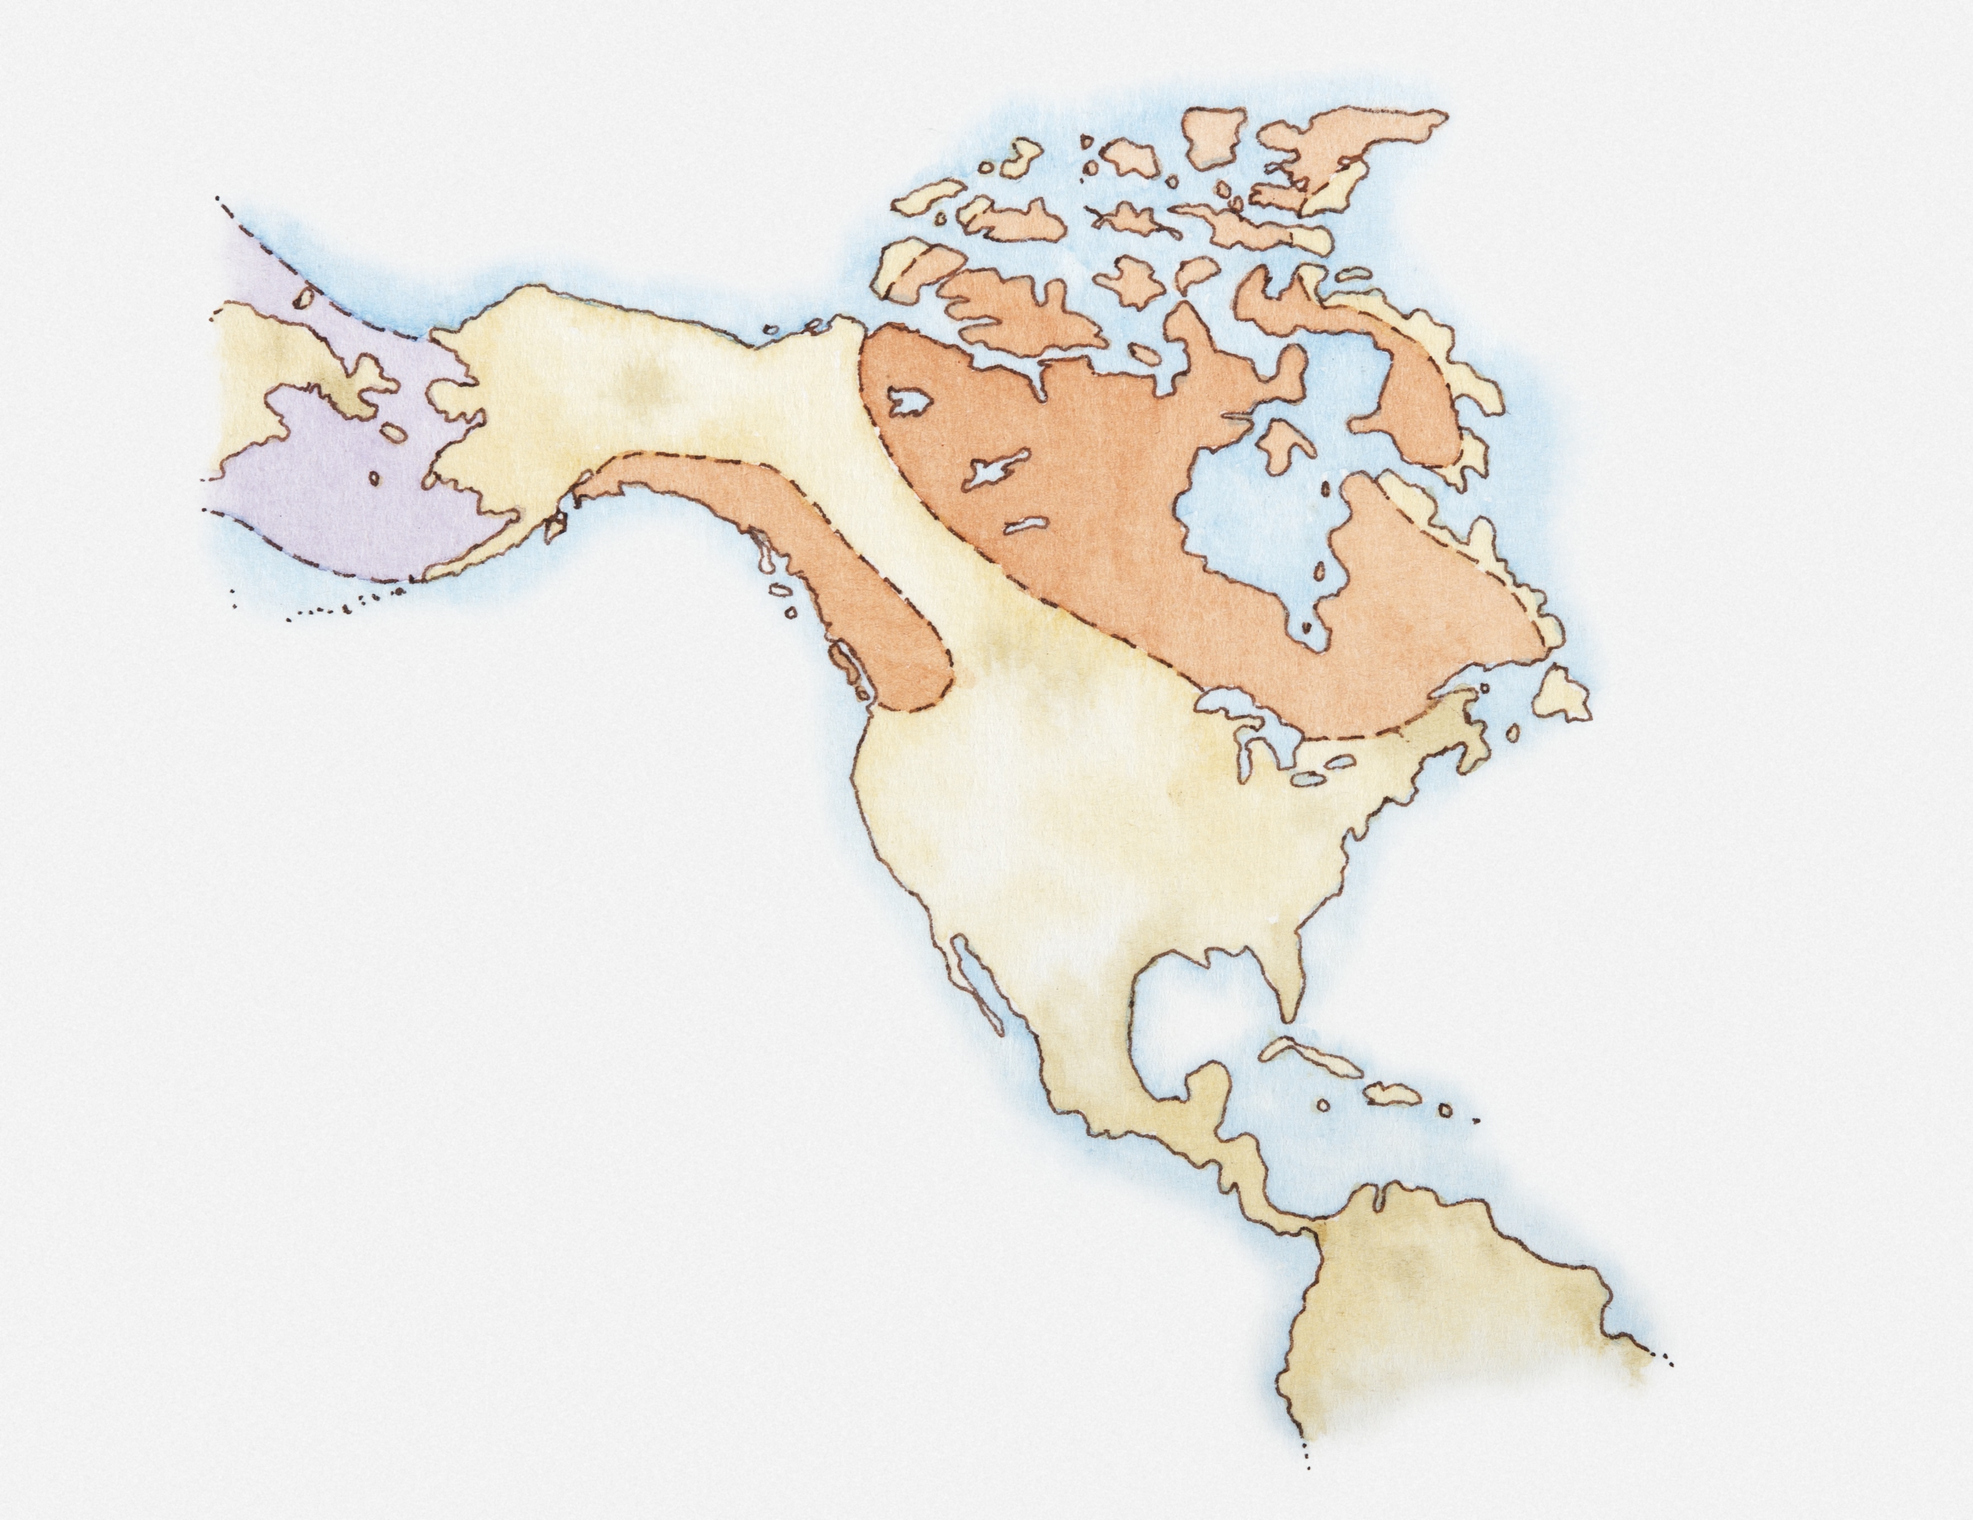 Ilration Of North America And Greenland With Areas Covered In Ice Highlighted In Red Land